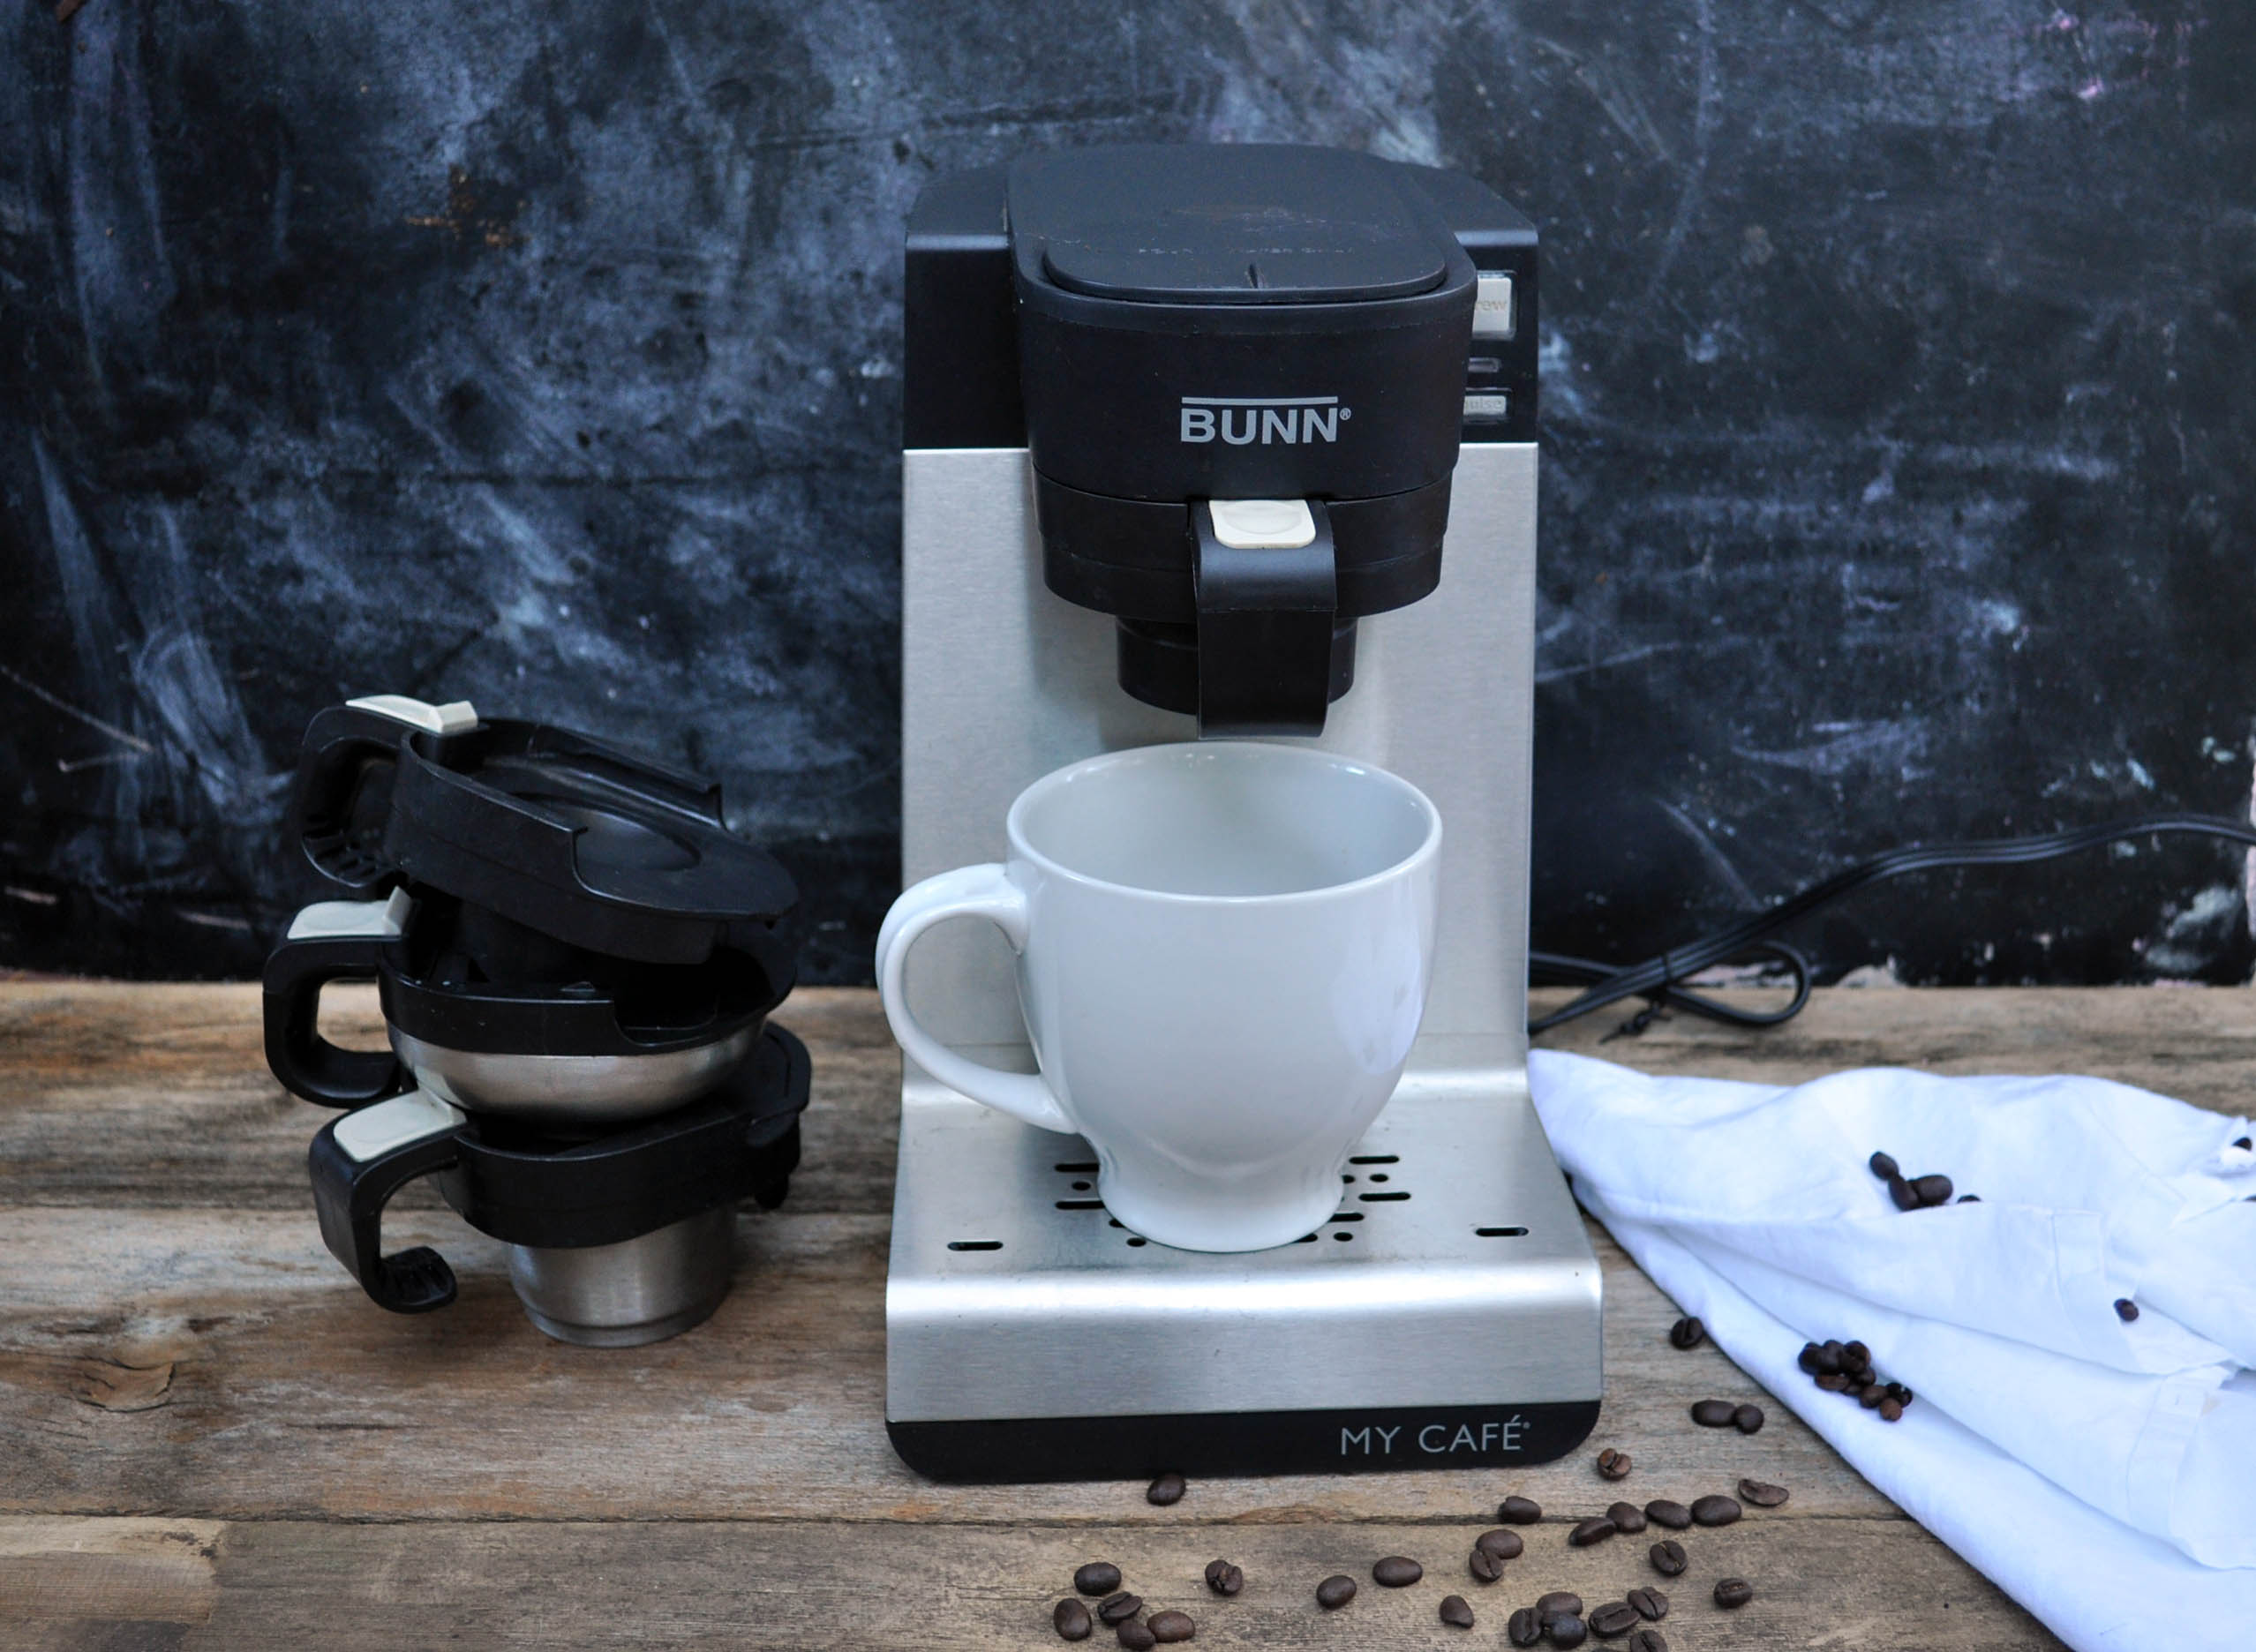 Bunn Coffee Maker That Uses K Cups : Bunn My Cafe MCU review Clumsy Crafter